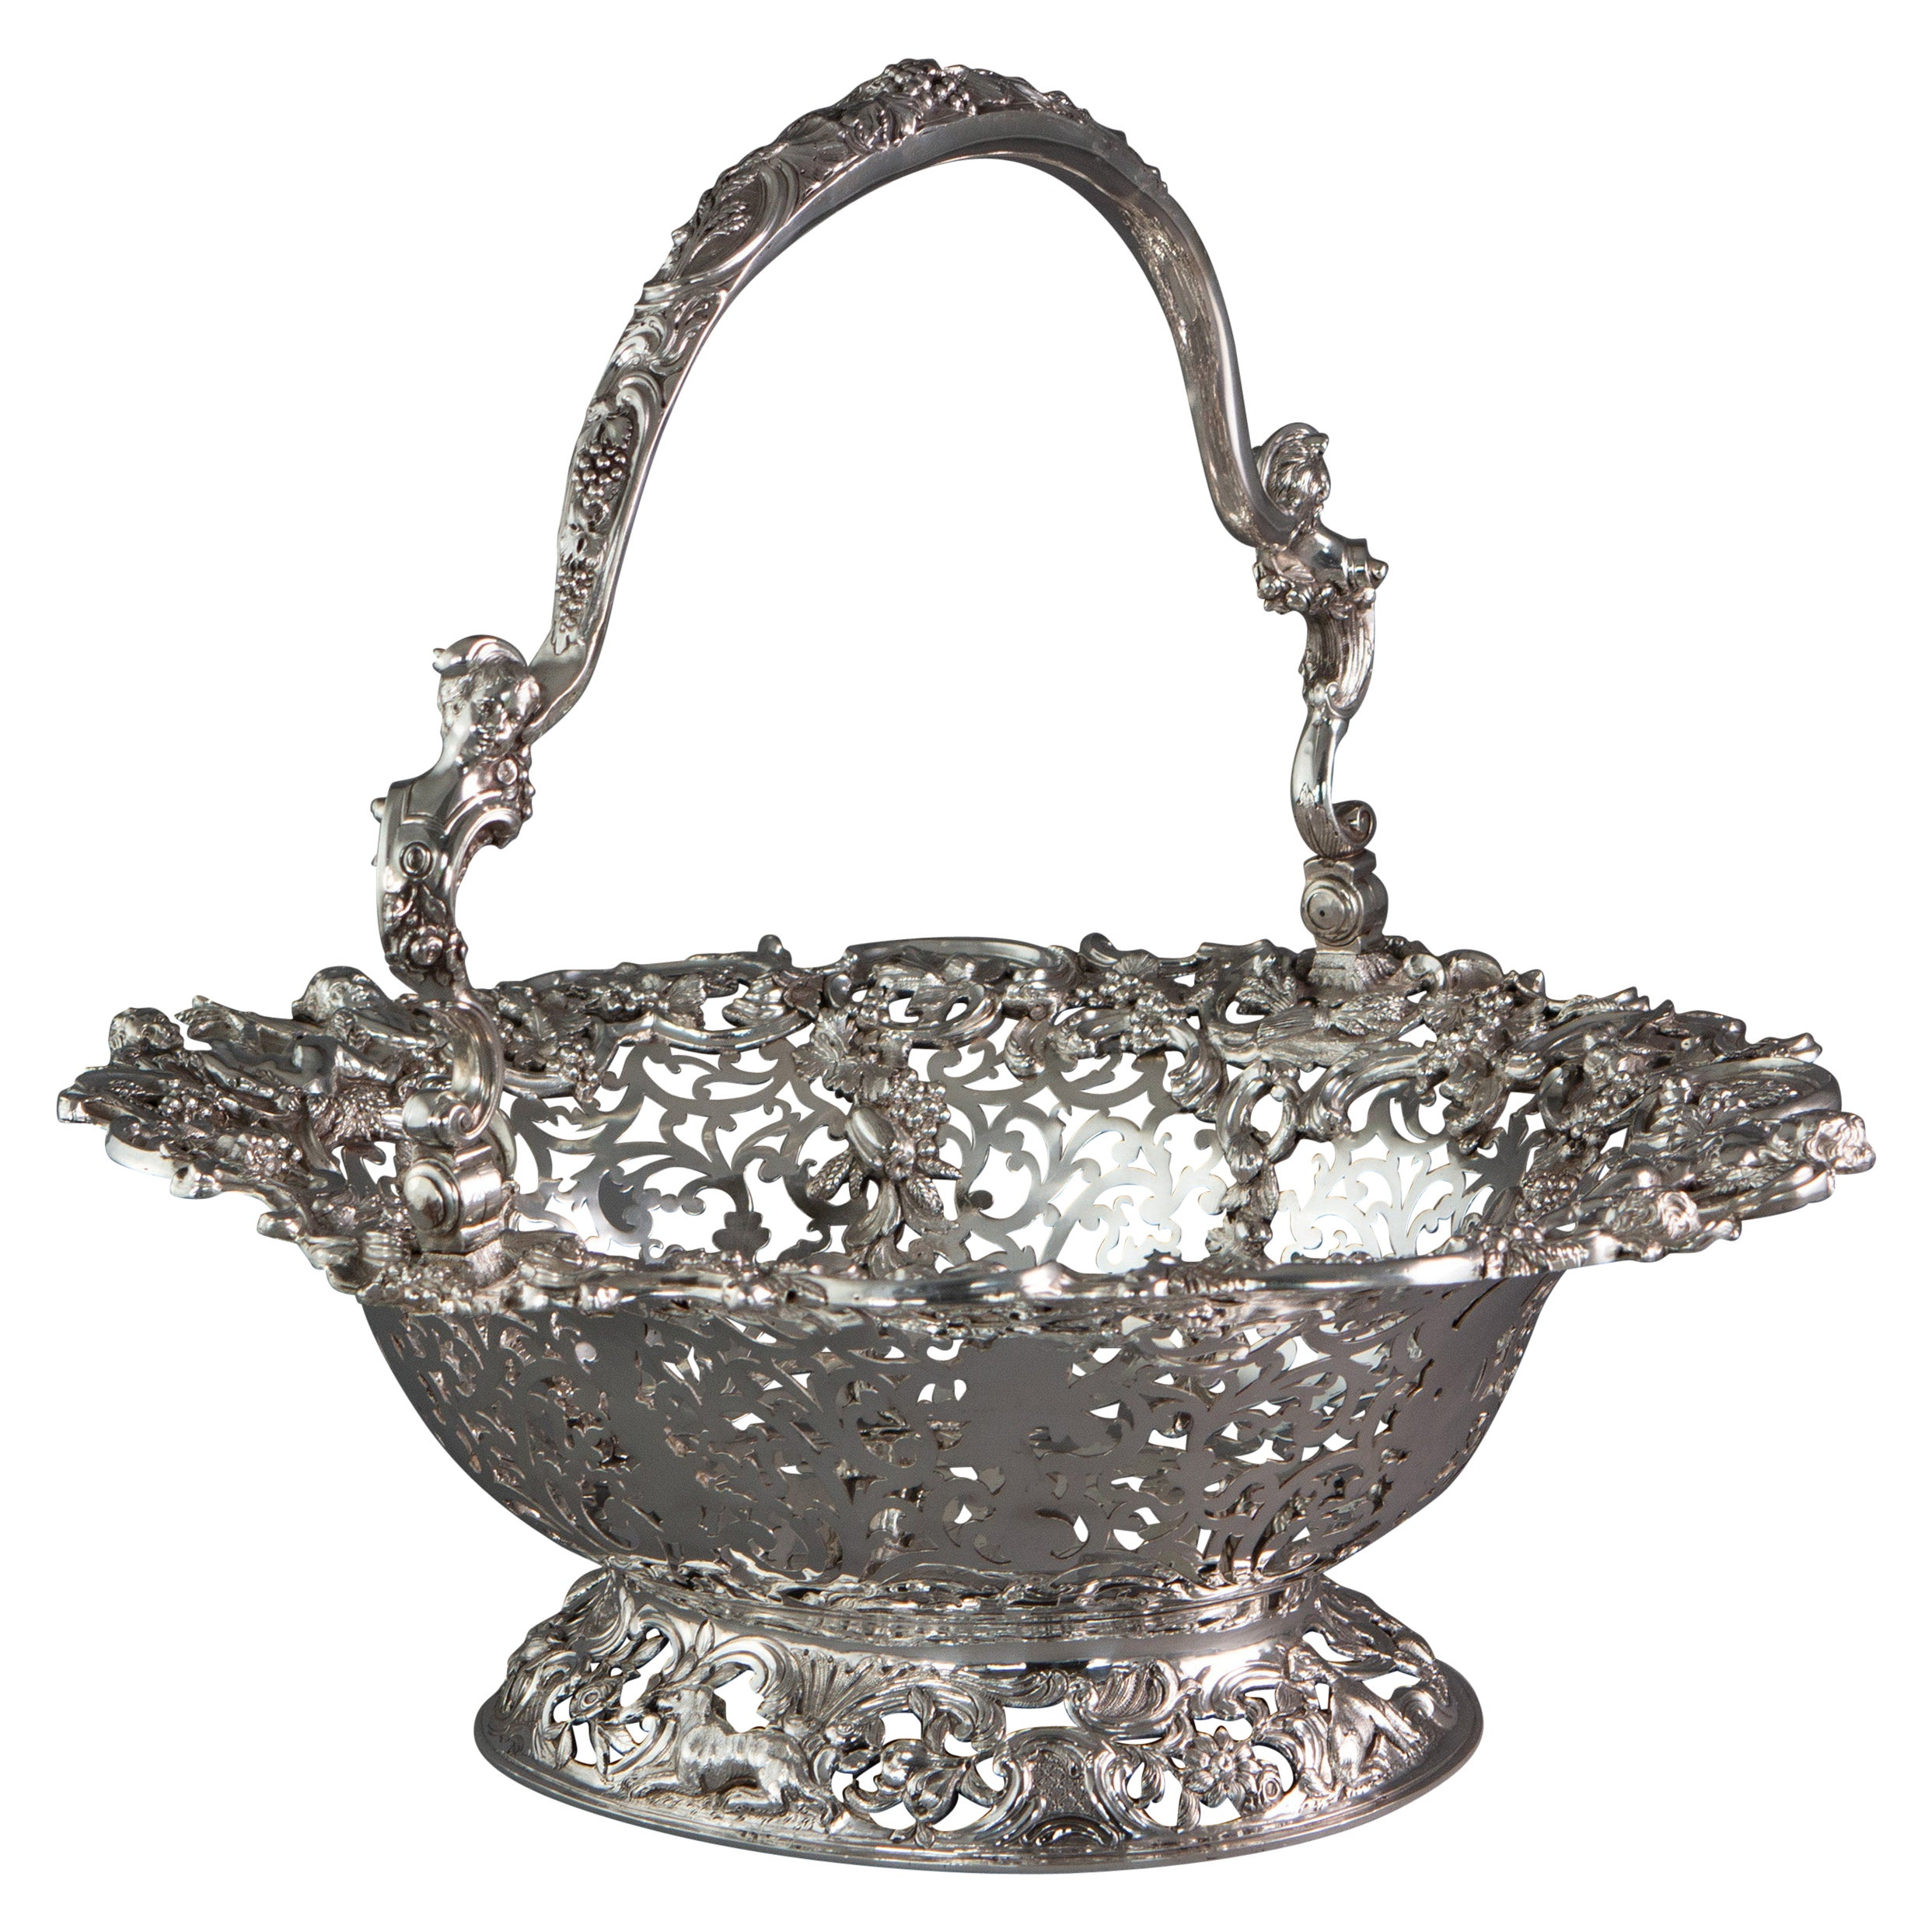 Royal Interest, a George II Silver Harvest Basket London 1759, by William Tuite